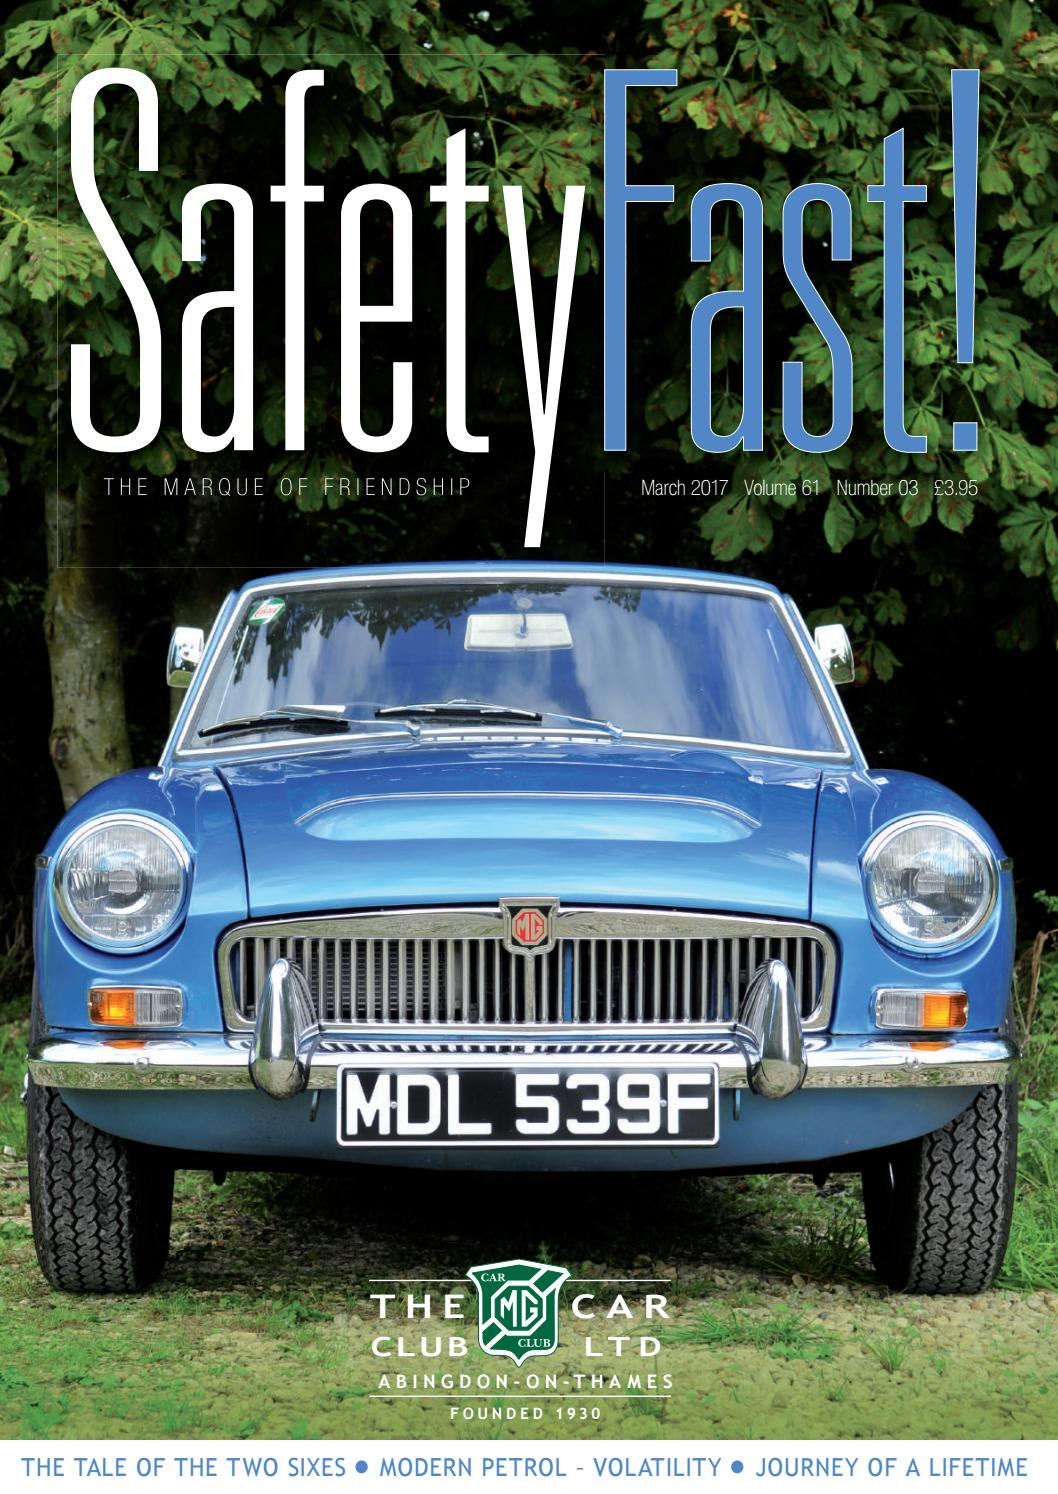 Safety Fast! March 2017 by MG Car Club - issuu